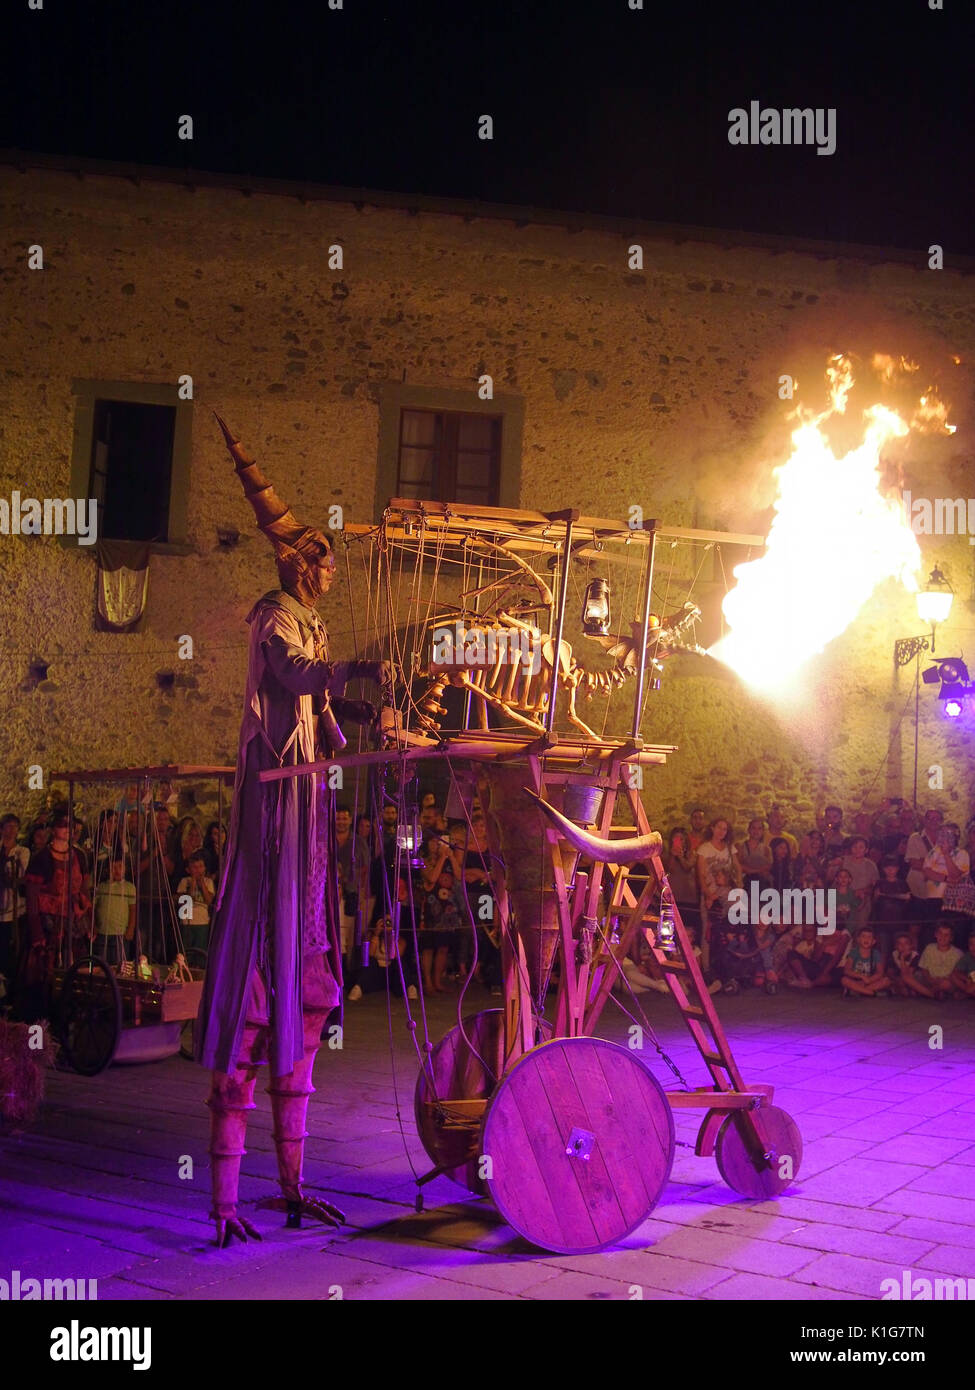 FILETTO, ITALY - AUGUST 15,2017: The annual Medieval market. Here Ottfried and his fire breathing dragon entertain the crowds. - Stock Image